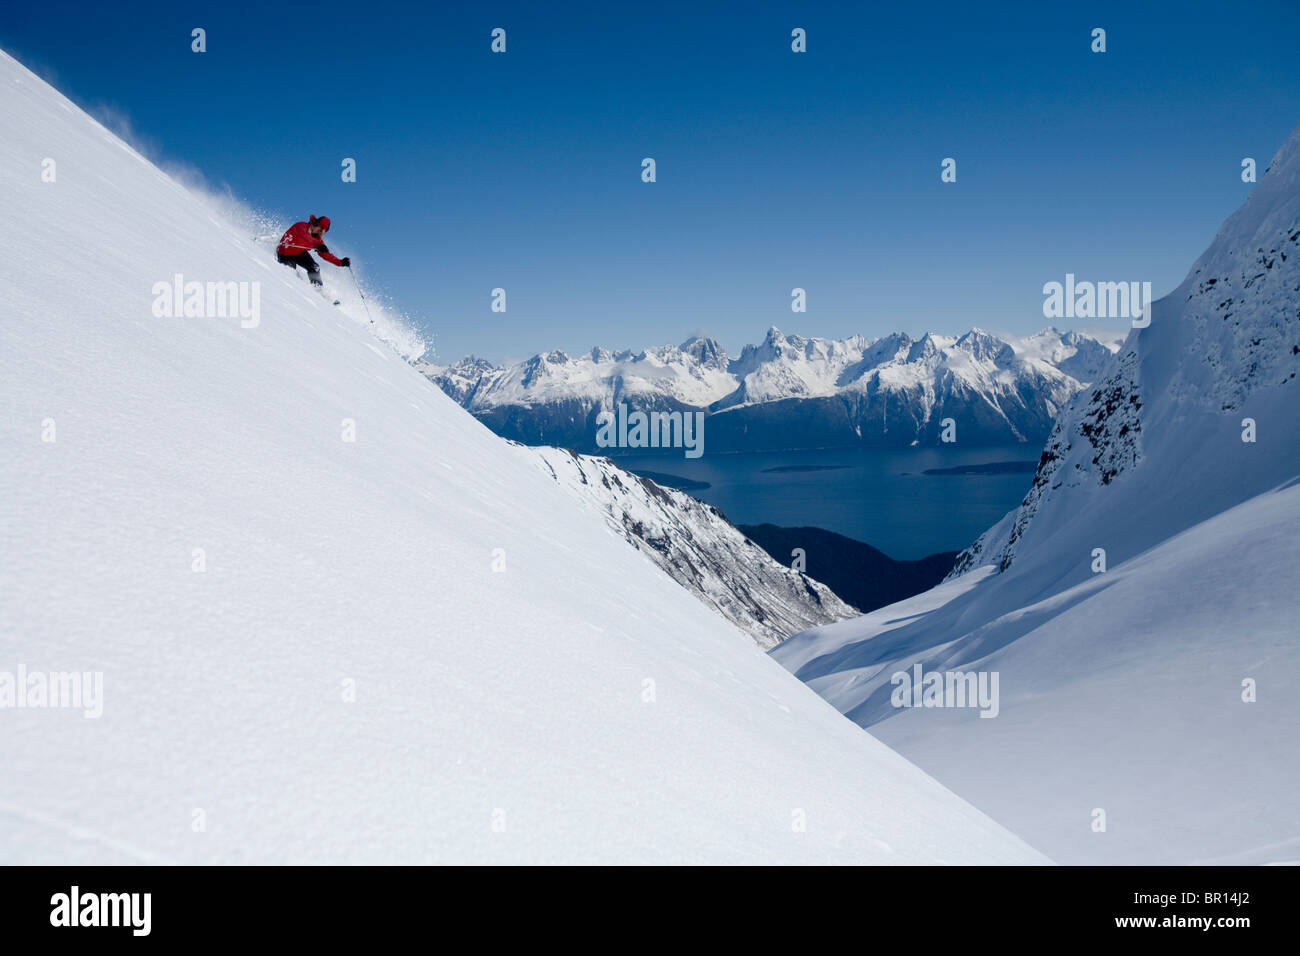 Telemark skier skis down steep mountain on sunny blue sky day in Alaska backcountry. - Stock Image